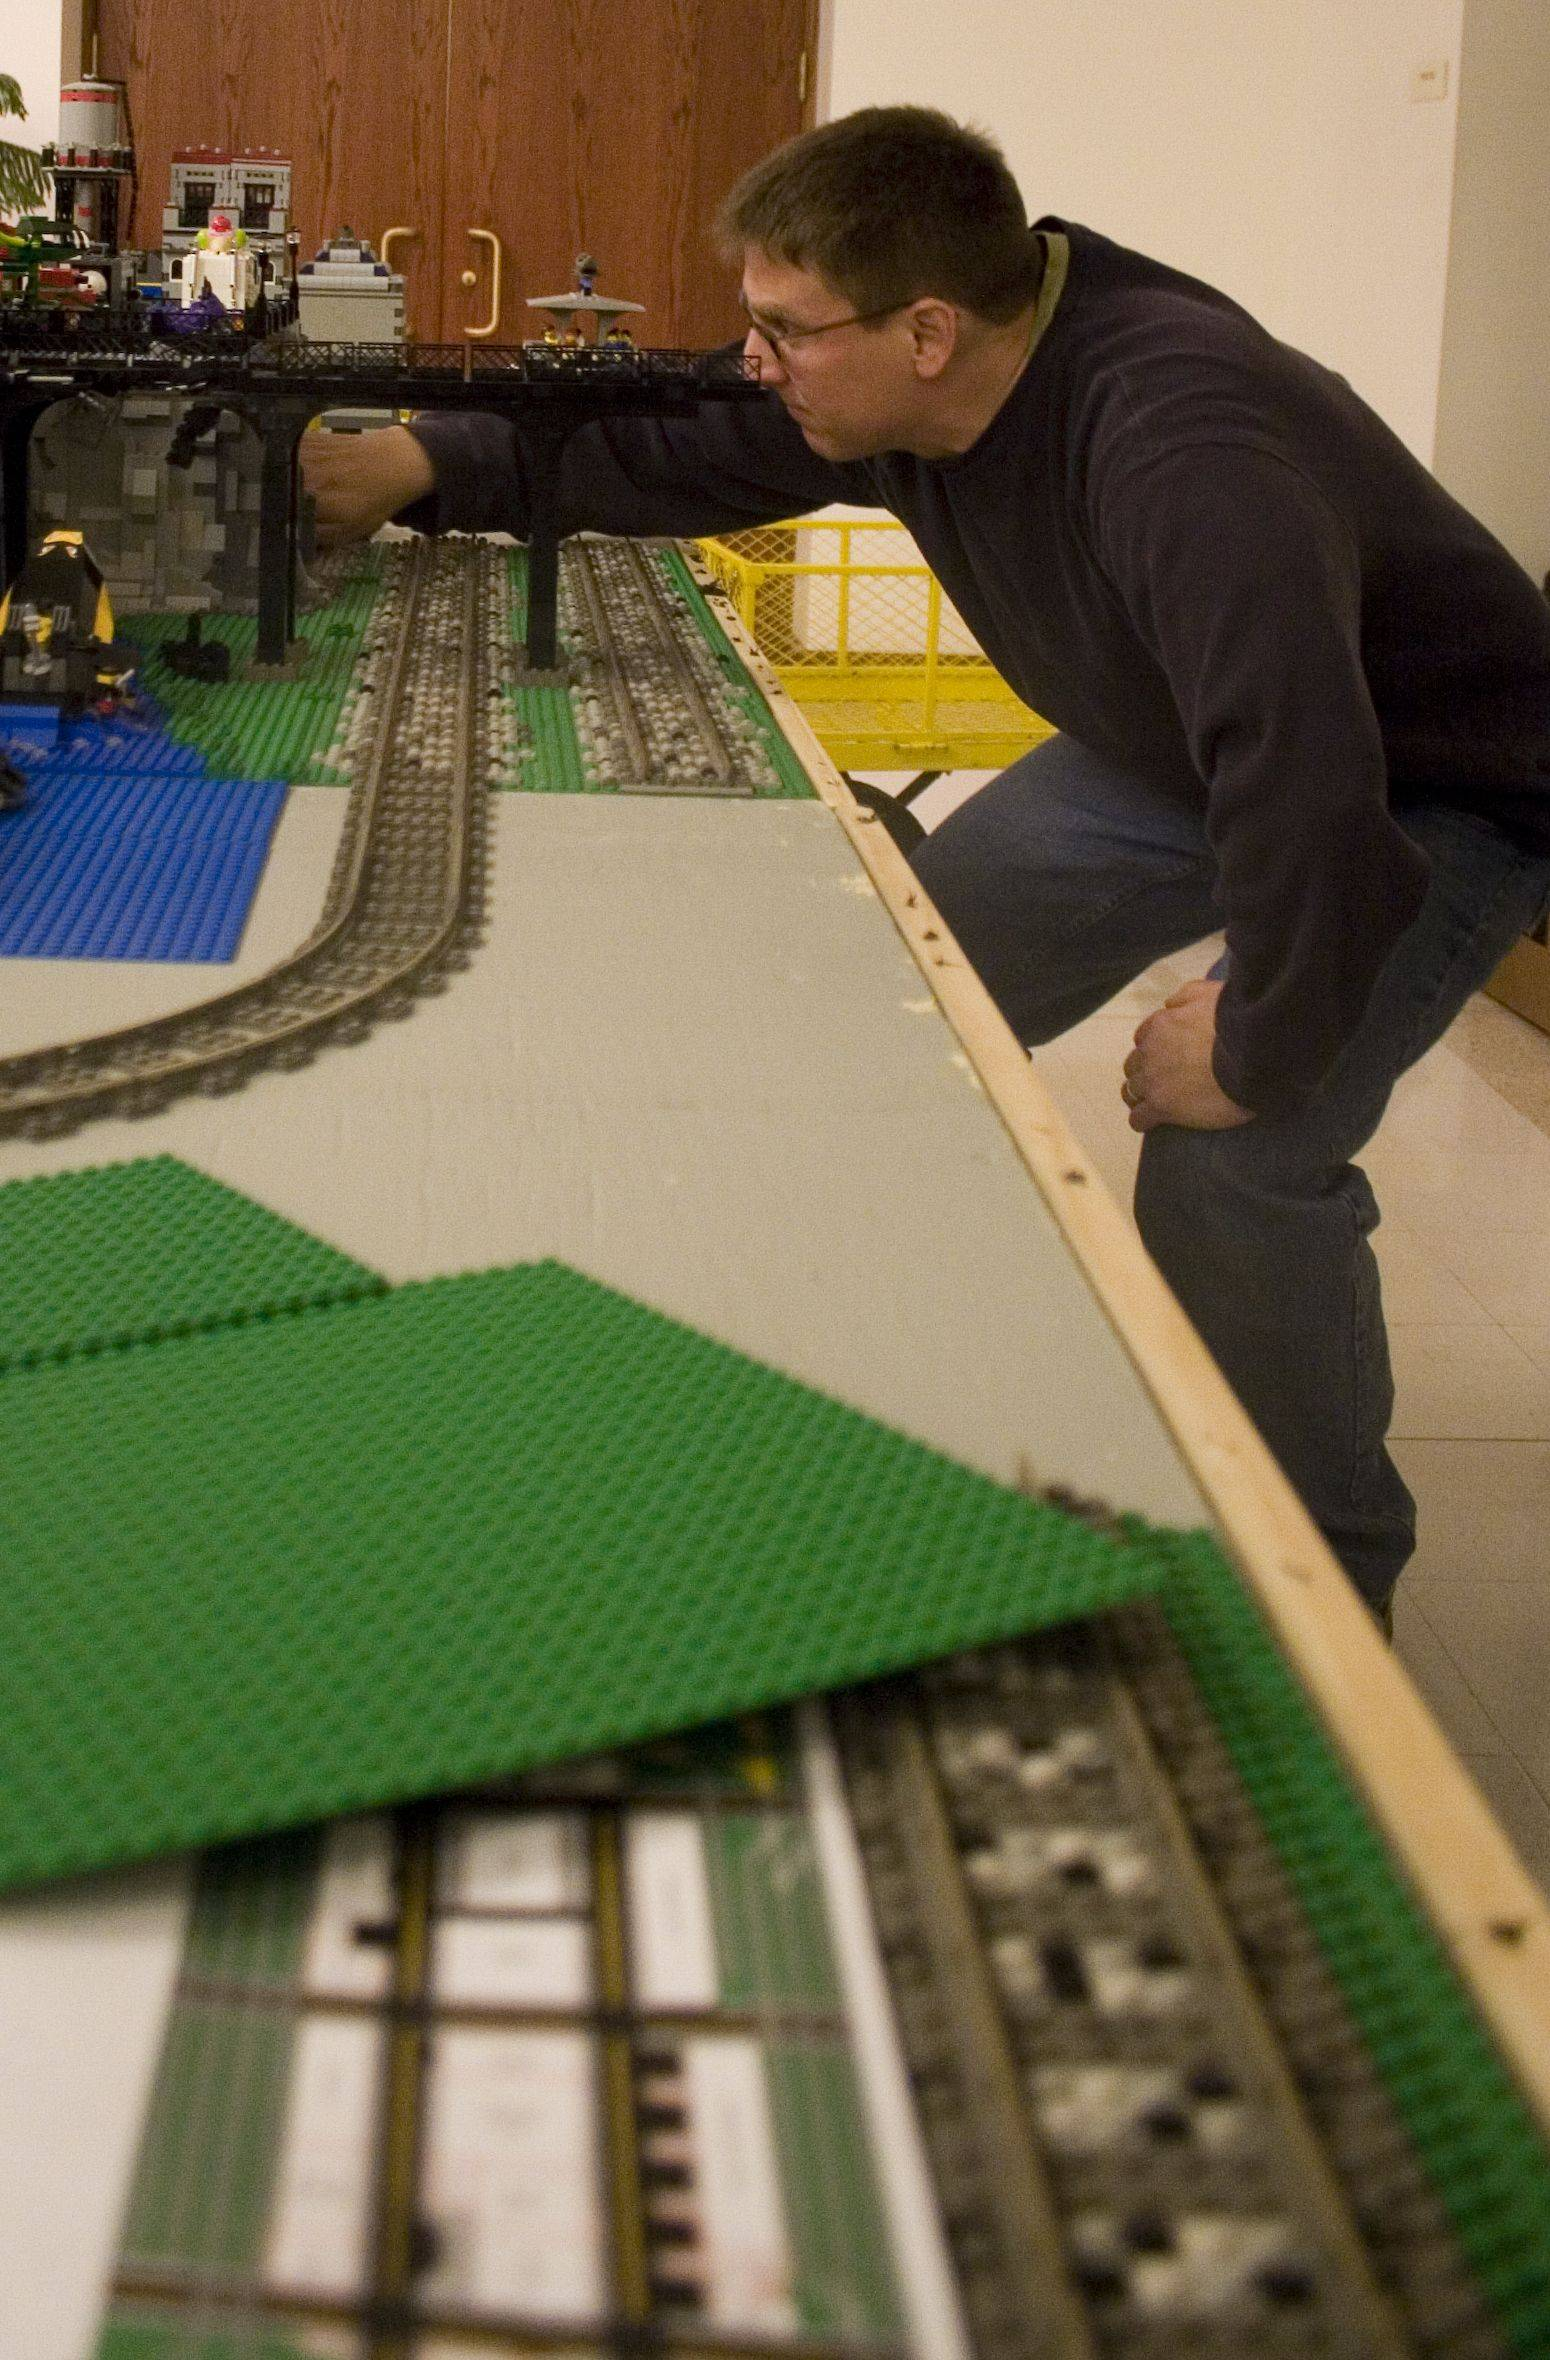 Northern Illinois Lego Train Club members like Dave Herring take a full day to set up the train layouts and displays for their annual show at Cantigny in Wheaton.